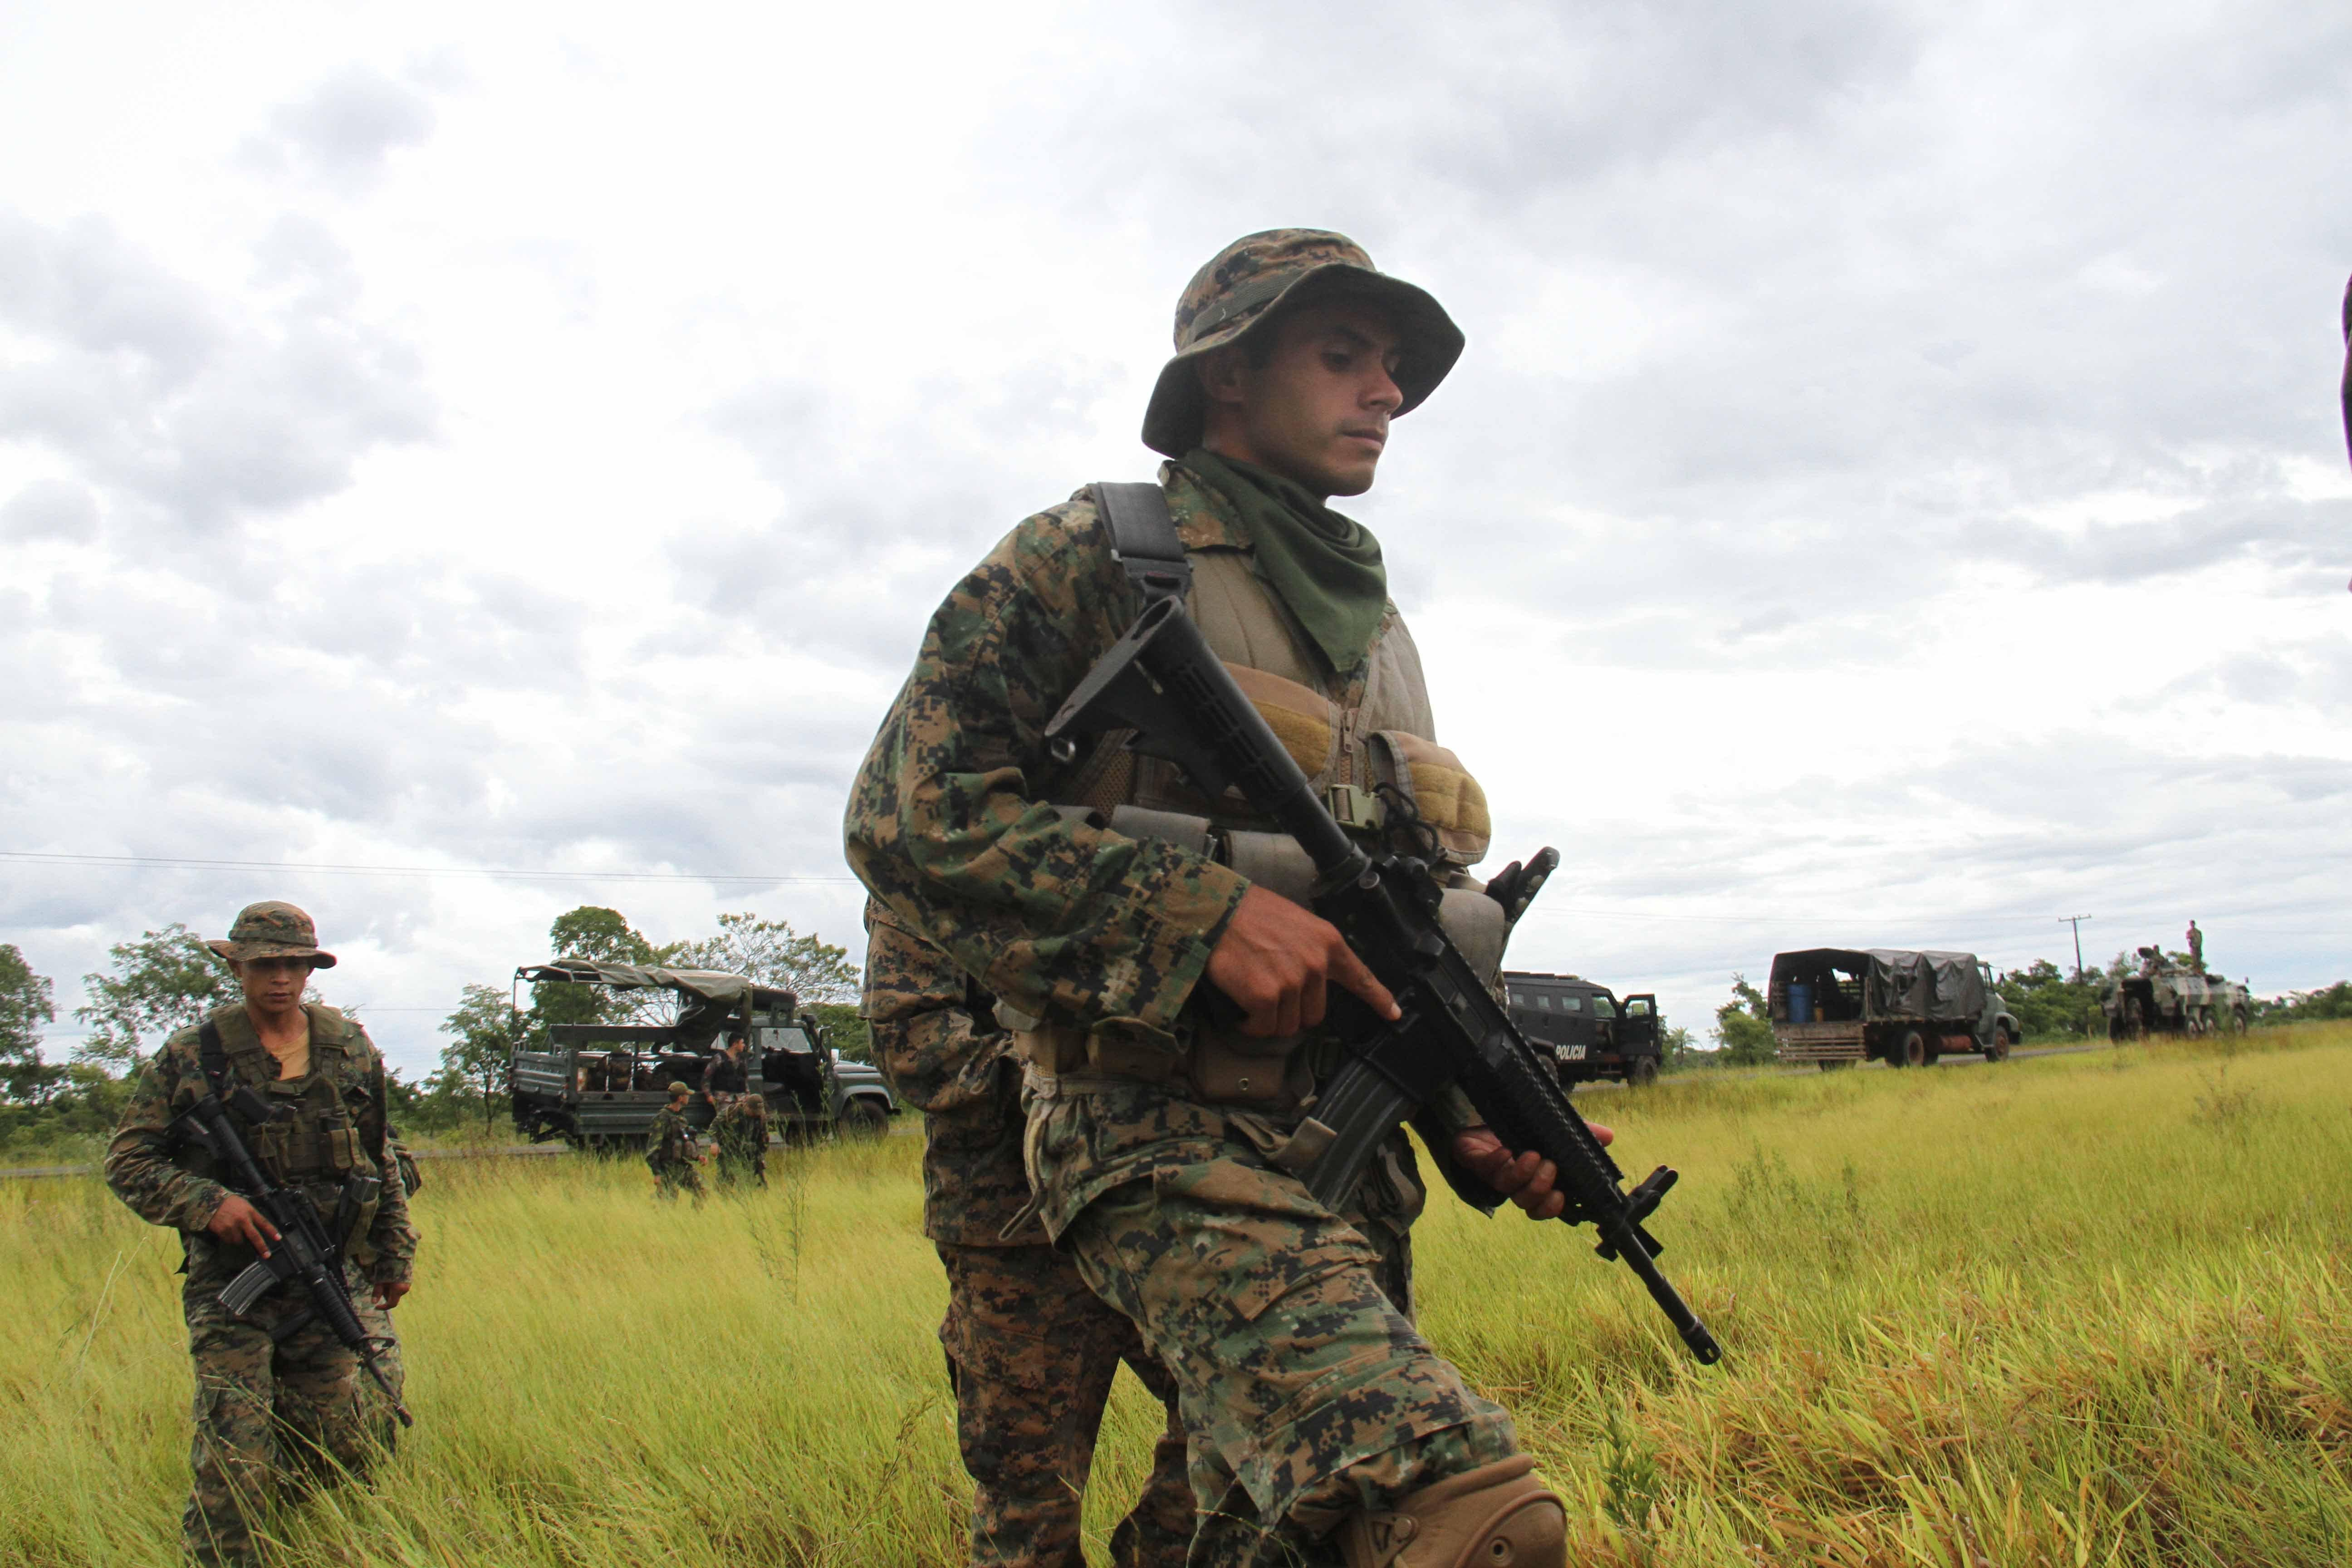 German couple killed in Paraguay, apparently by guerrillas